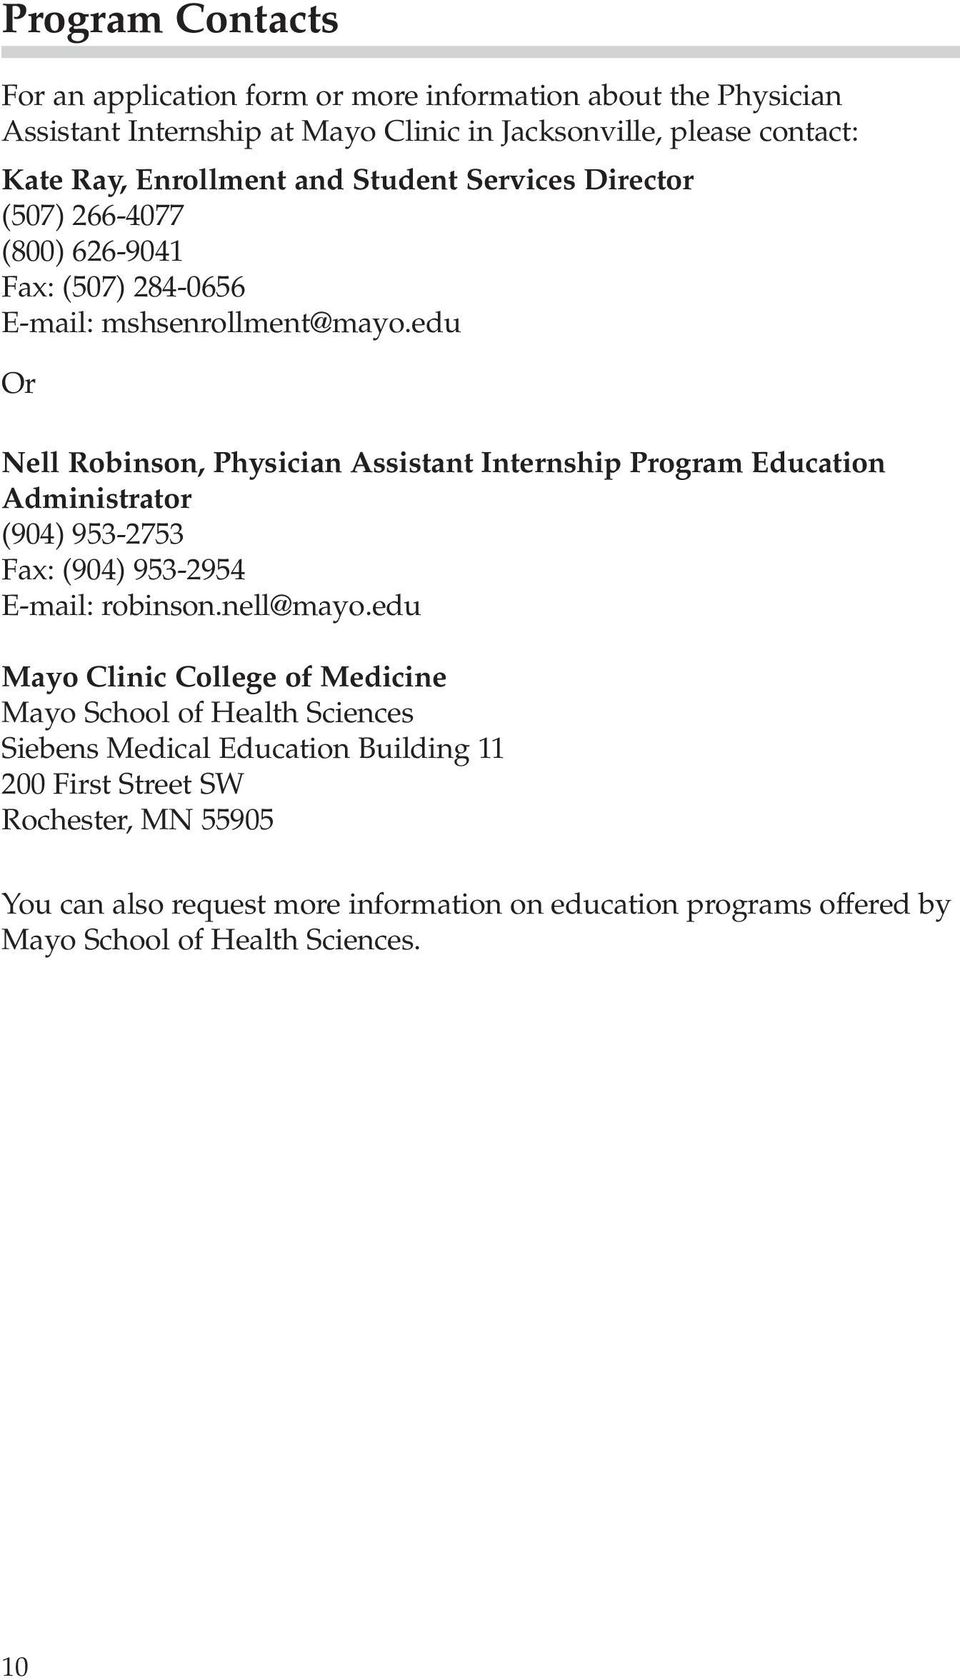 Mayo School of Health Sciences  Physician Assistant